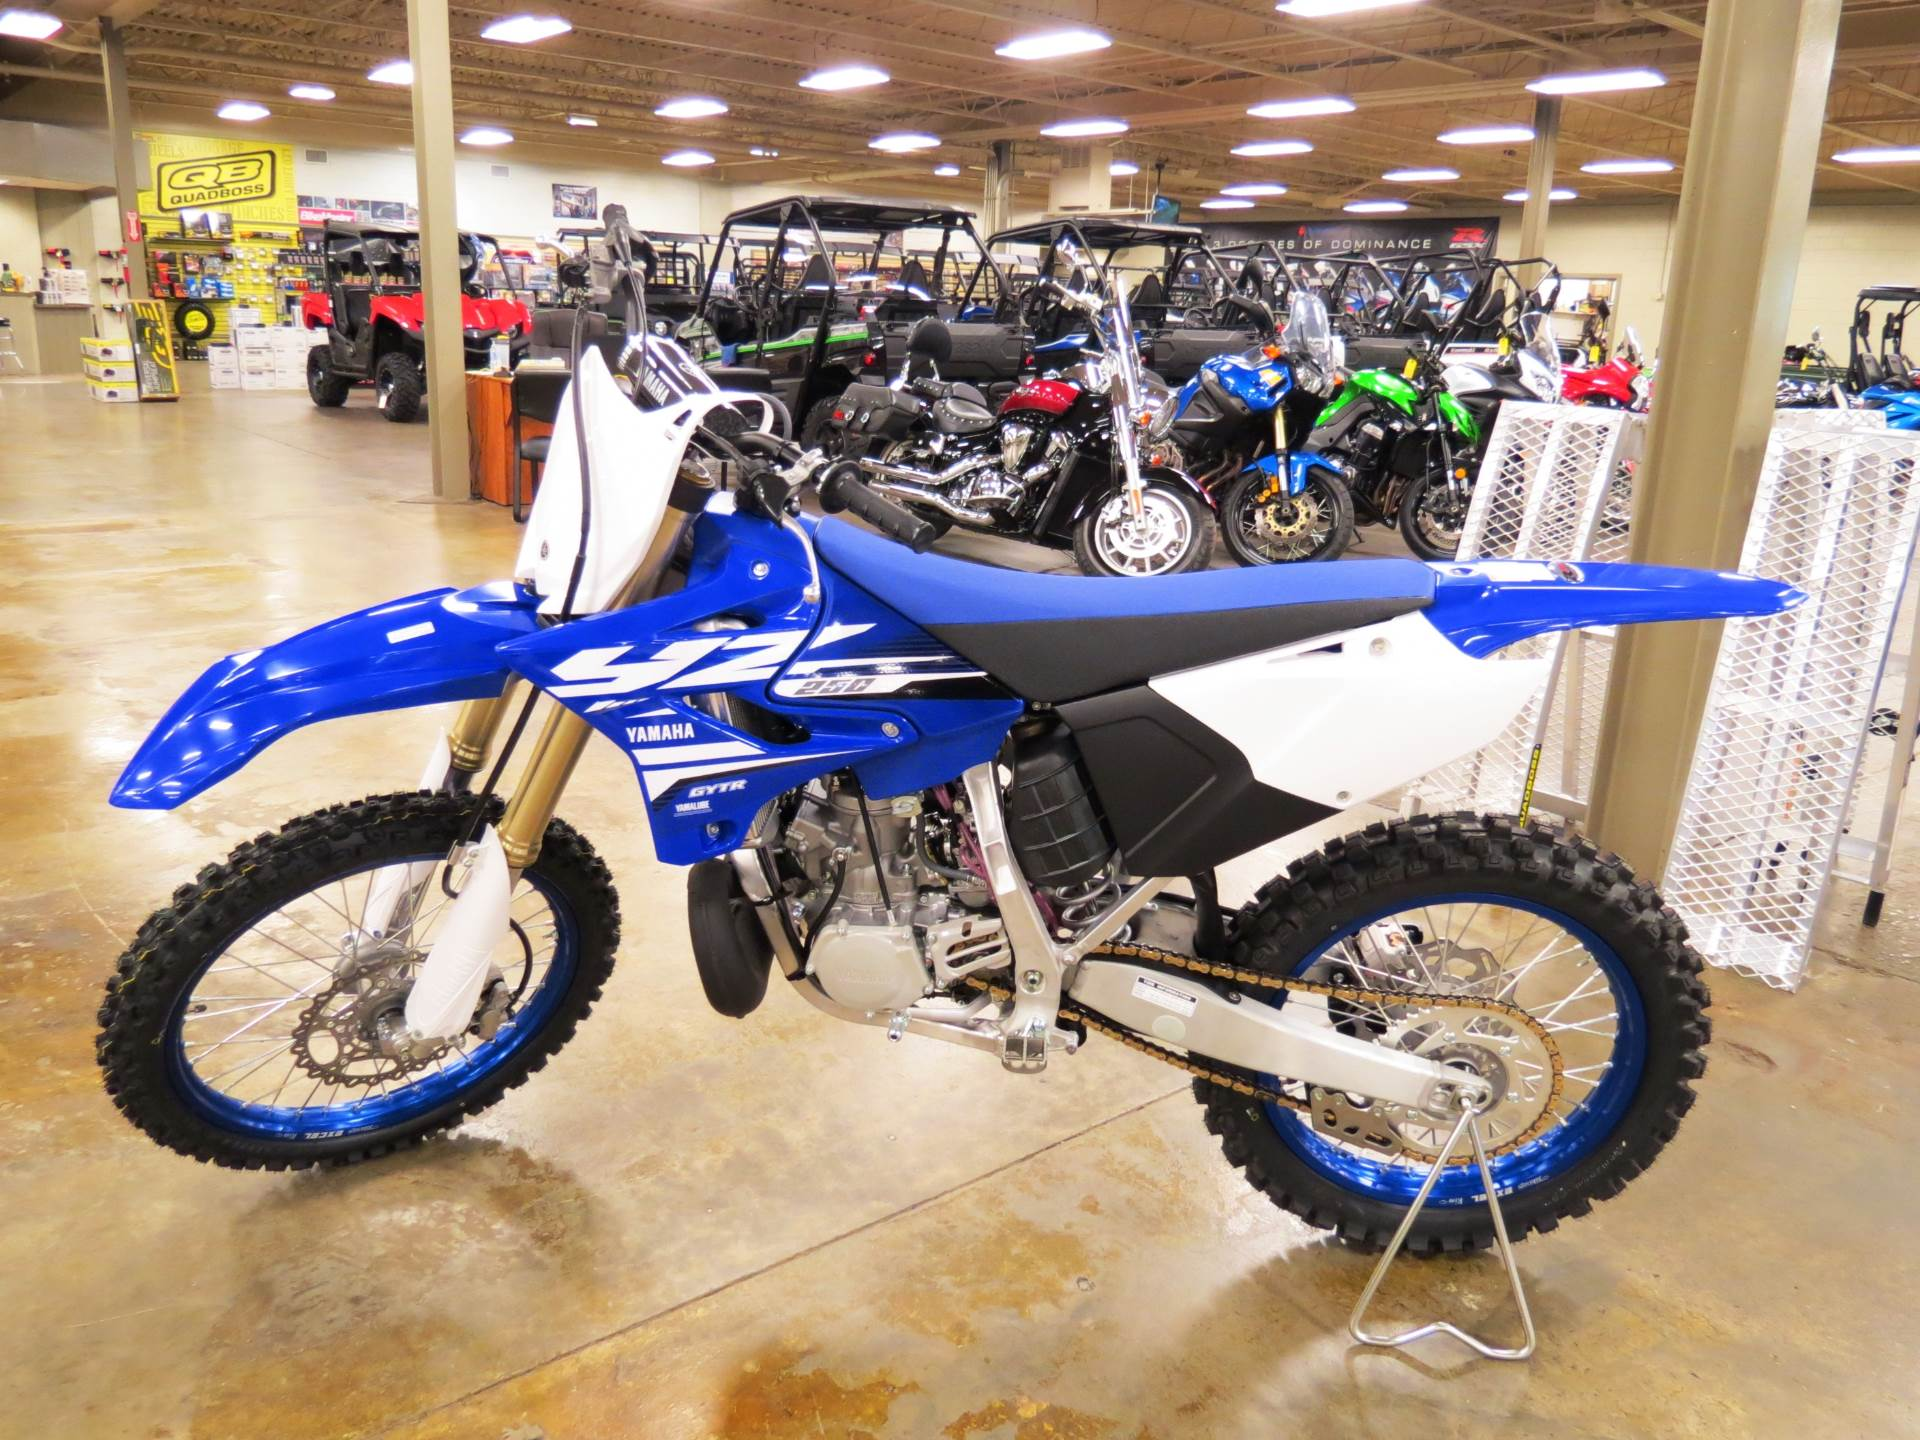 2018 yamaha yz250 motorcycles romney west virginia 35125 for Yamaha installment financing